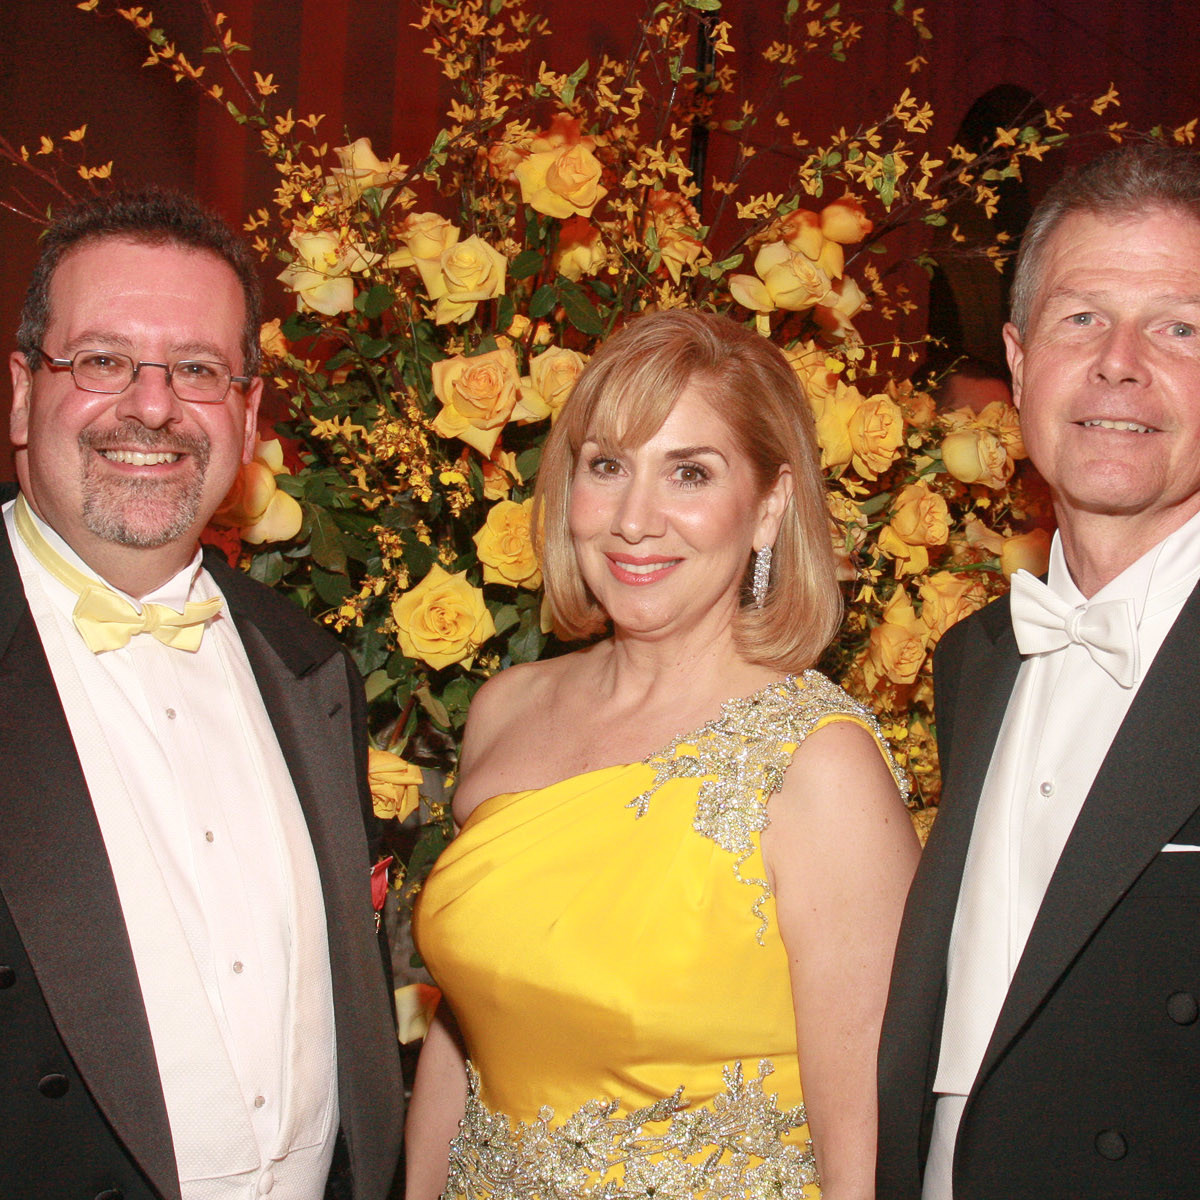 News_HGO Ball_April 2010_Anthony Freud_Denise Bush Bahr_Philip Bahr